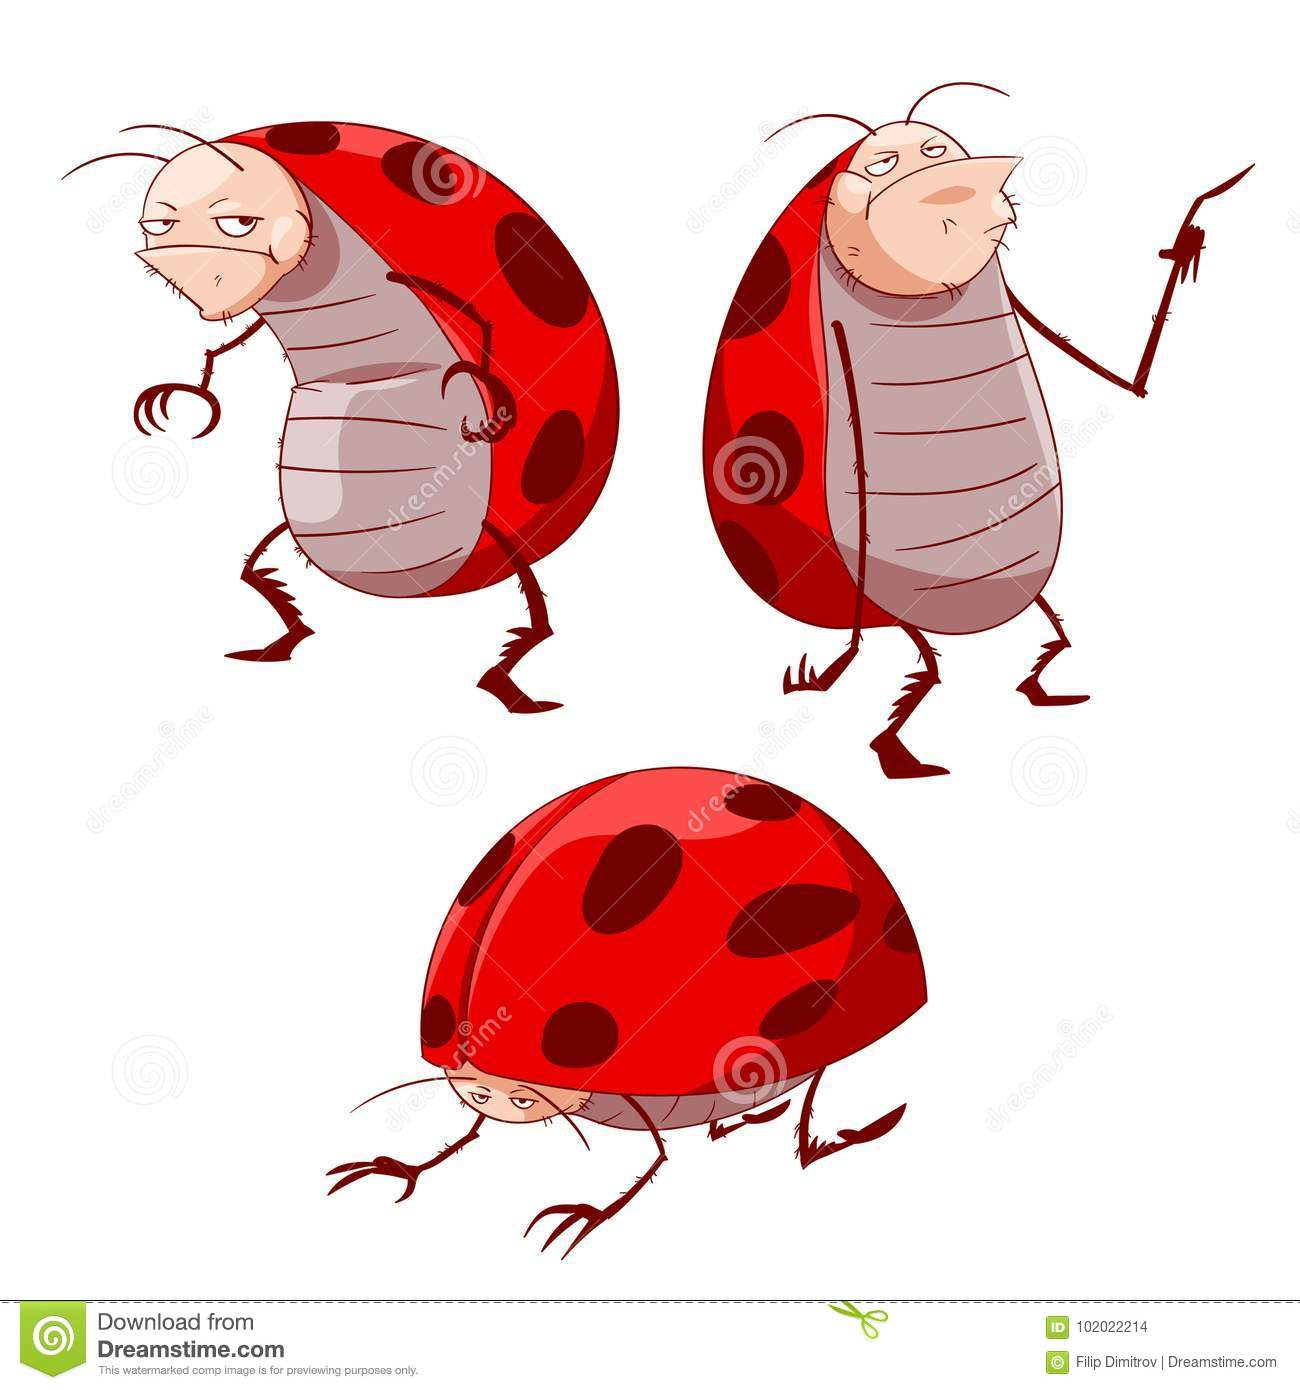 cartoon grumpy ladybugs stock vector illustration of insect 102022214